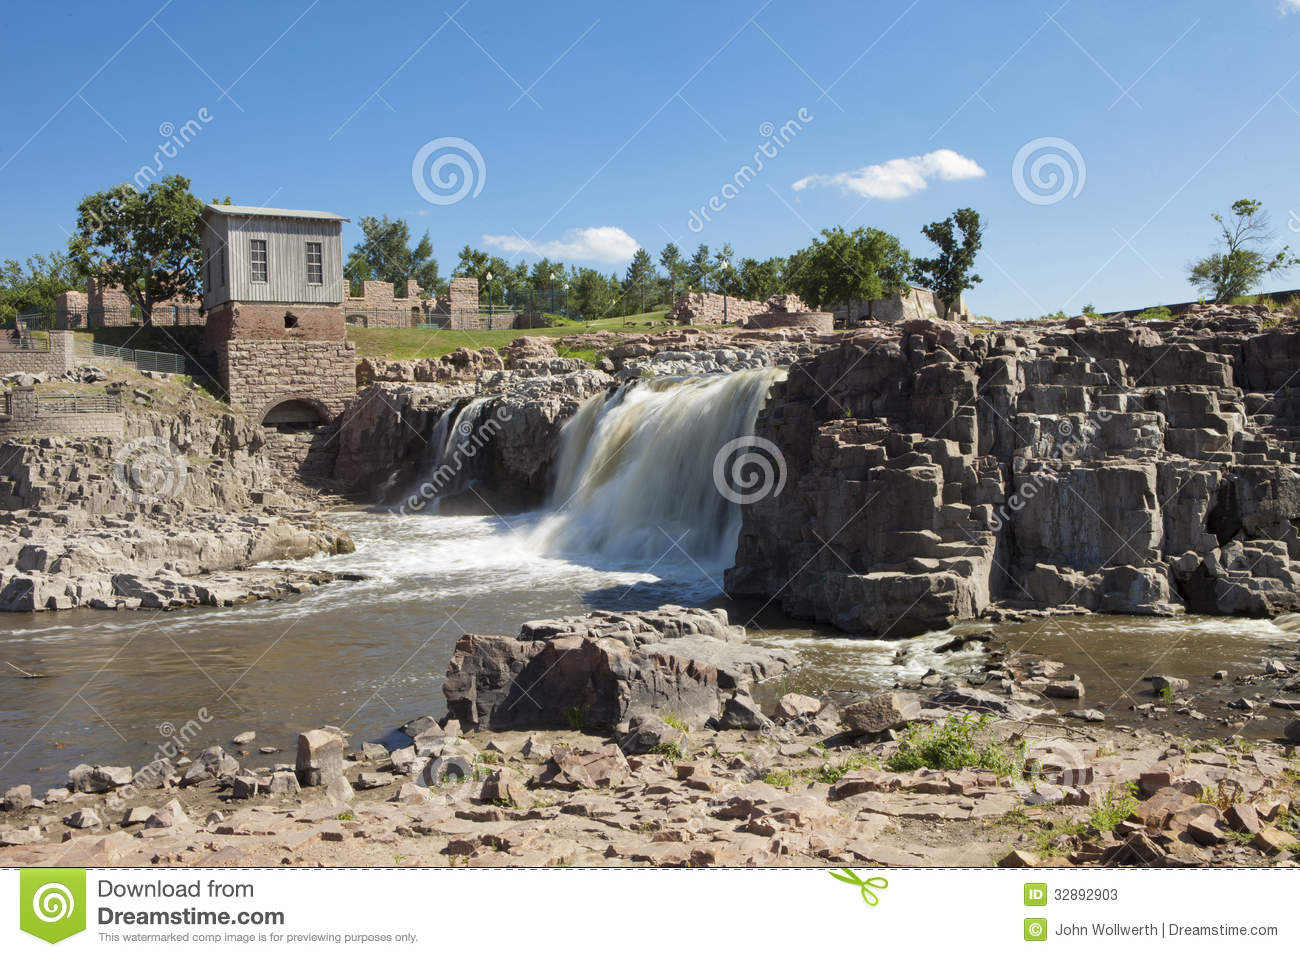 sioux falls south dakota stock image image of waterfall. Black Bedroom Furniture Sets. Home Design Ideas